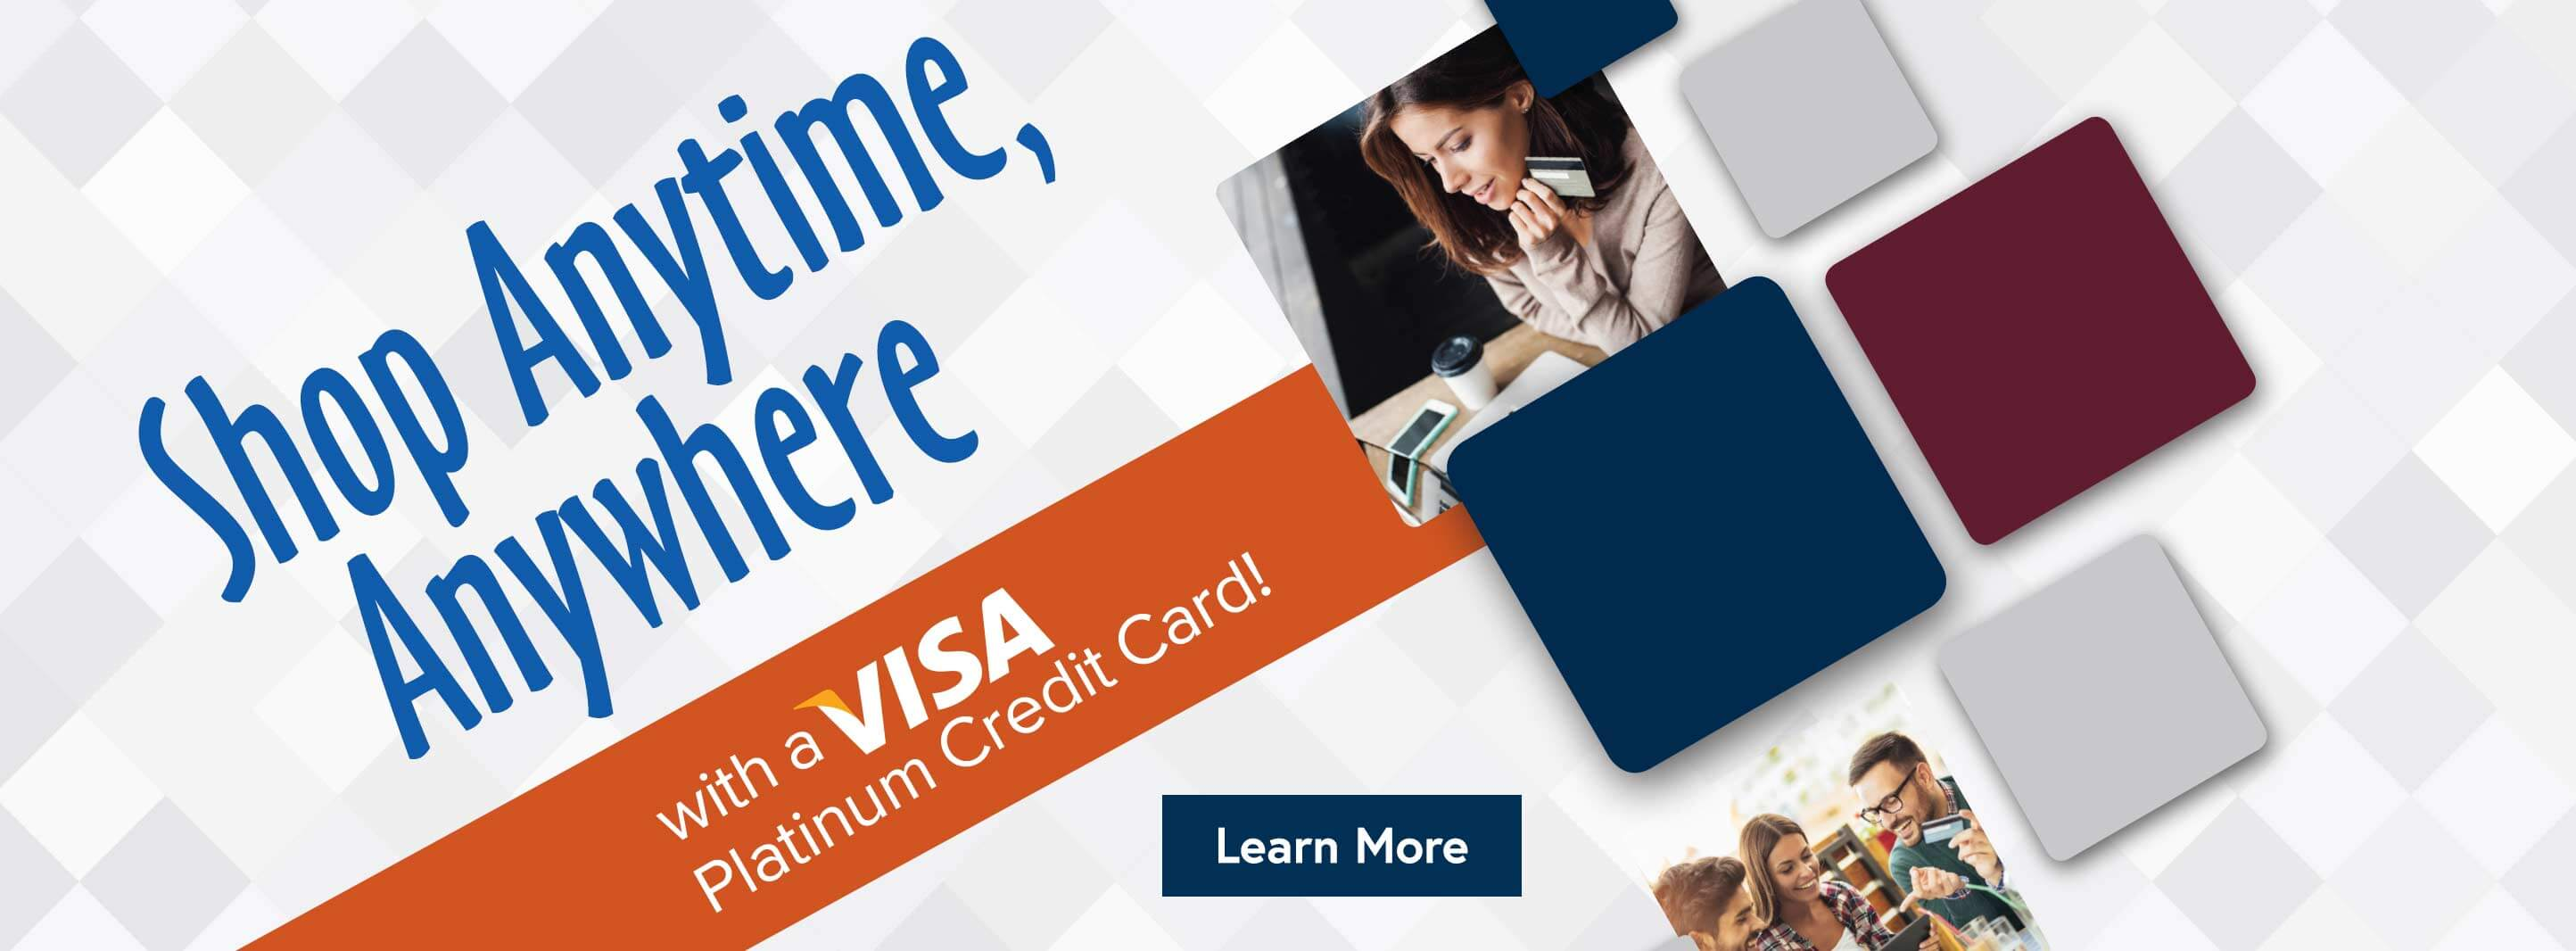 Shop anytime, anywhere with a VISA Platinum Credit Card. Learn More.